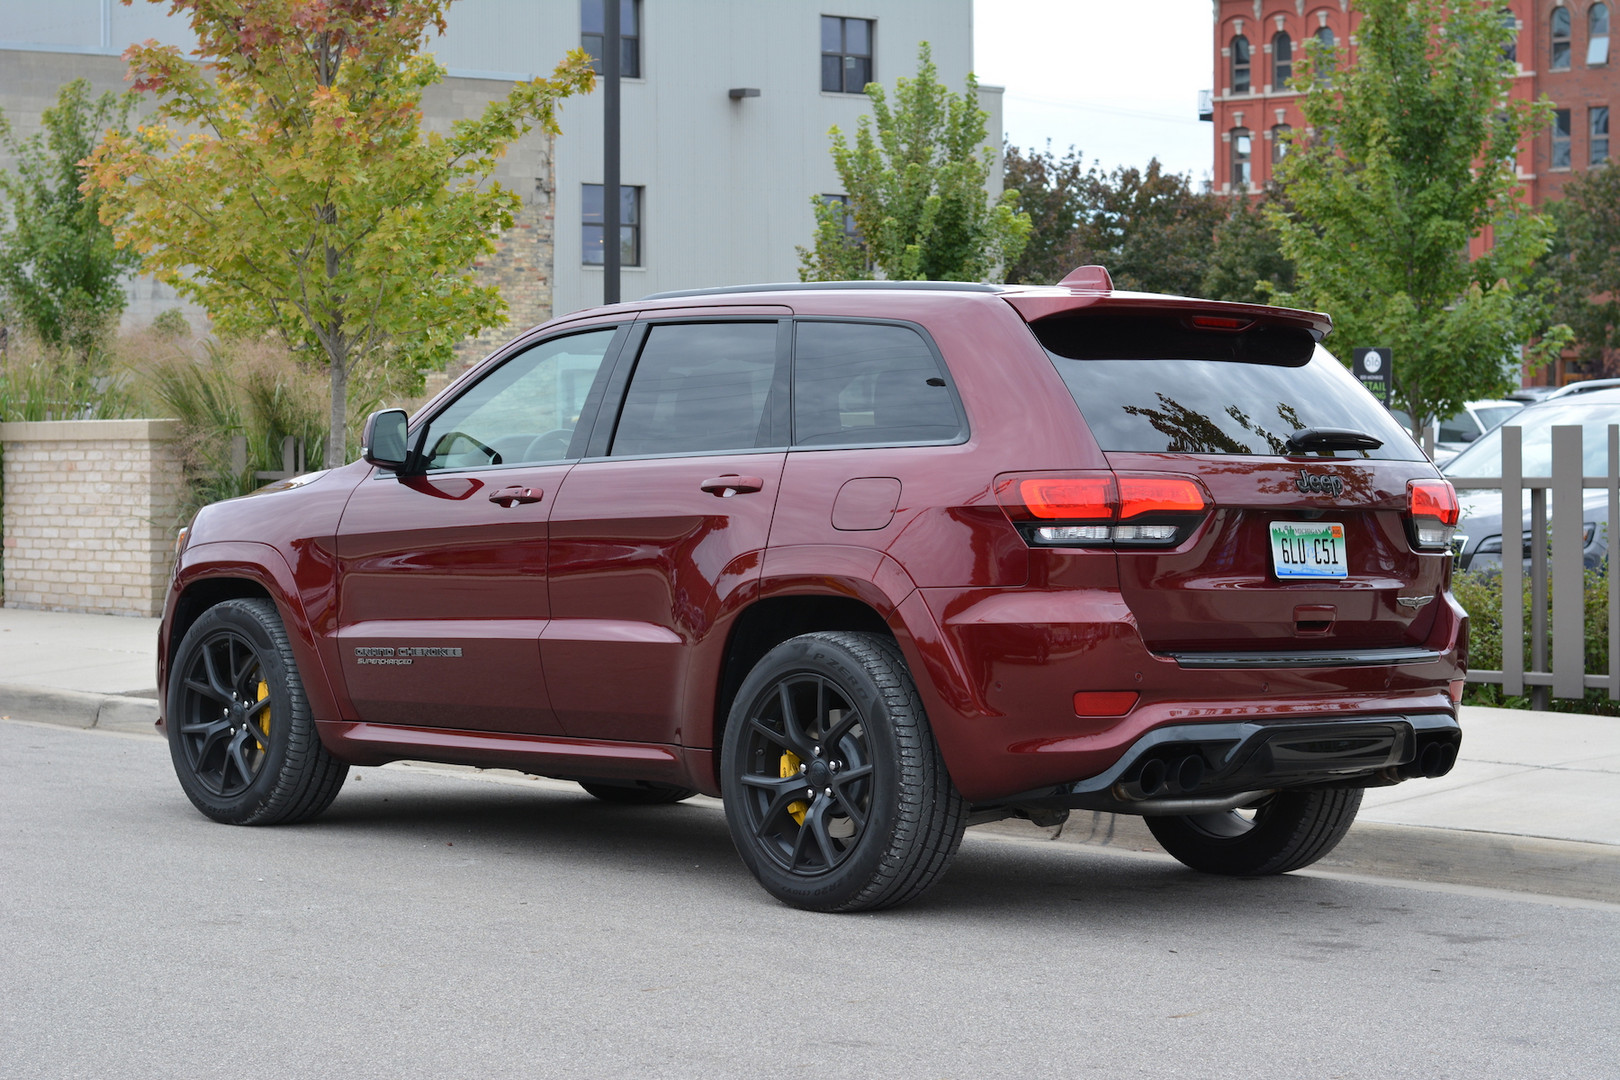 Track Hawk Grand Cherokee >> 2019 Jeep Grand Cherokee Trackhawk Review - GTspirit